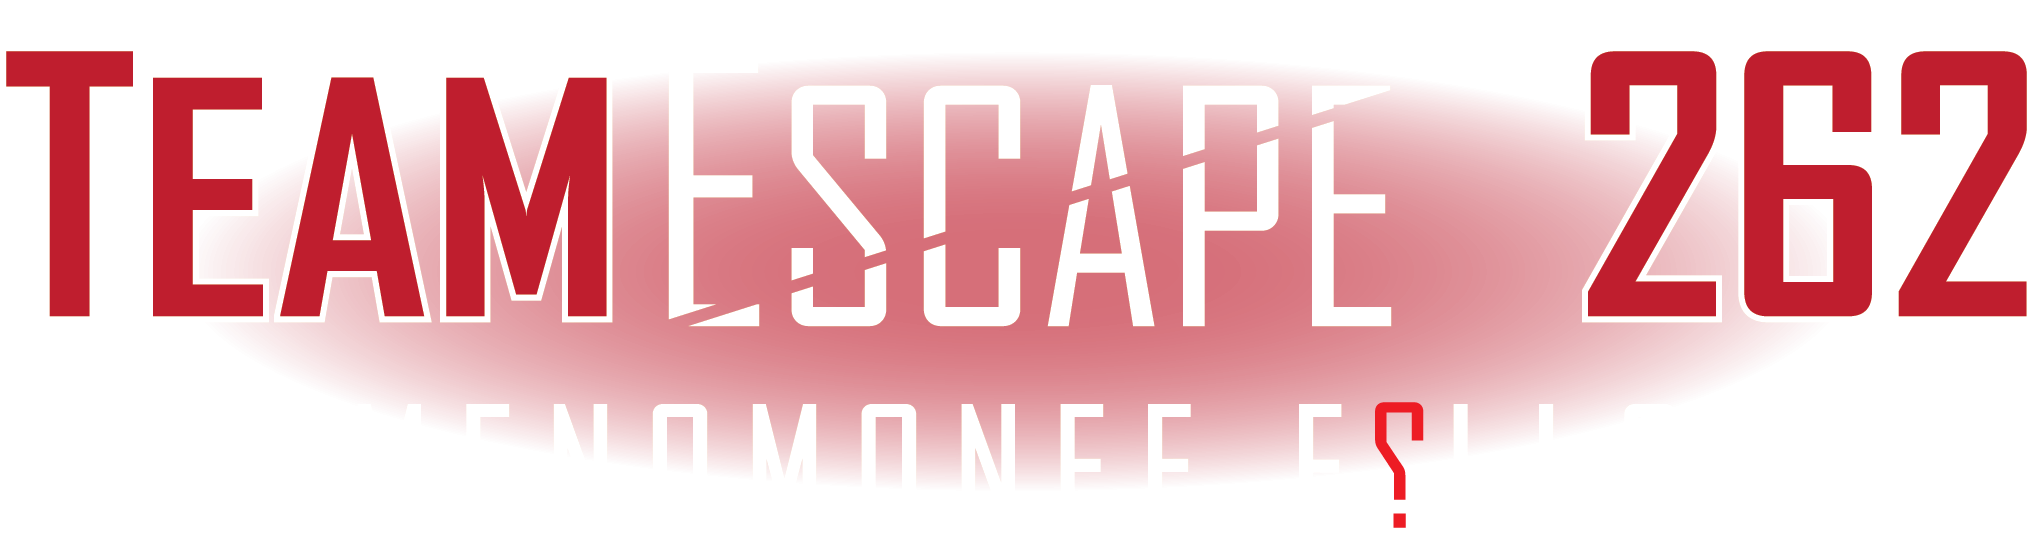 TEAM_ESCAPE_262_LOGO